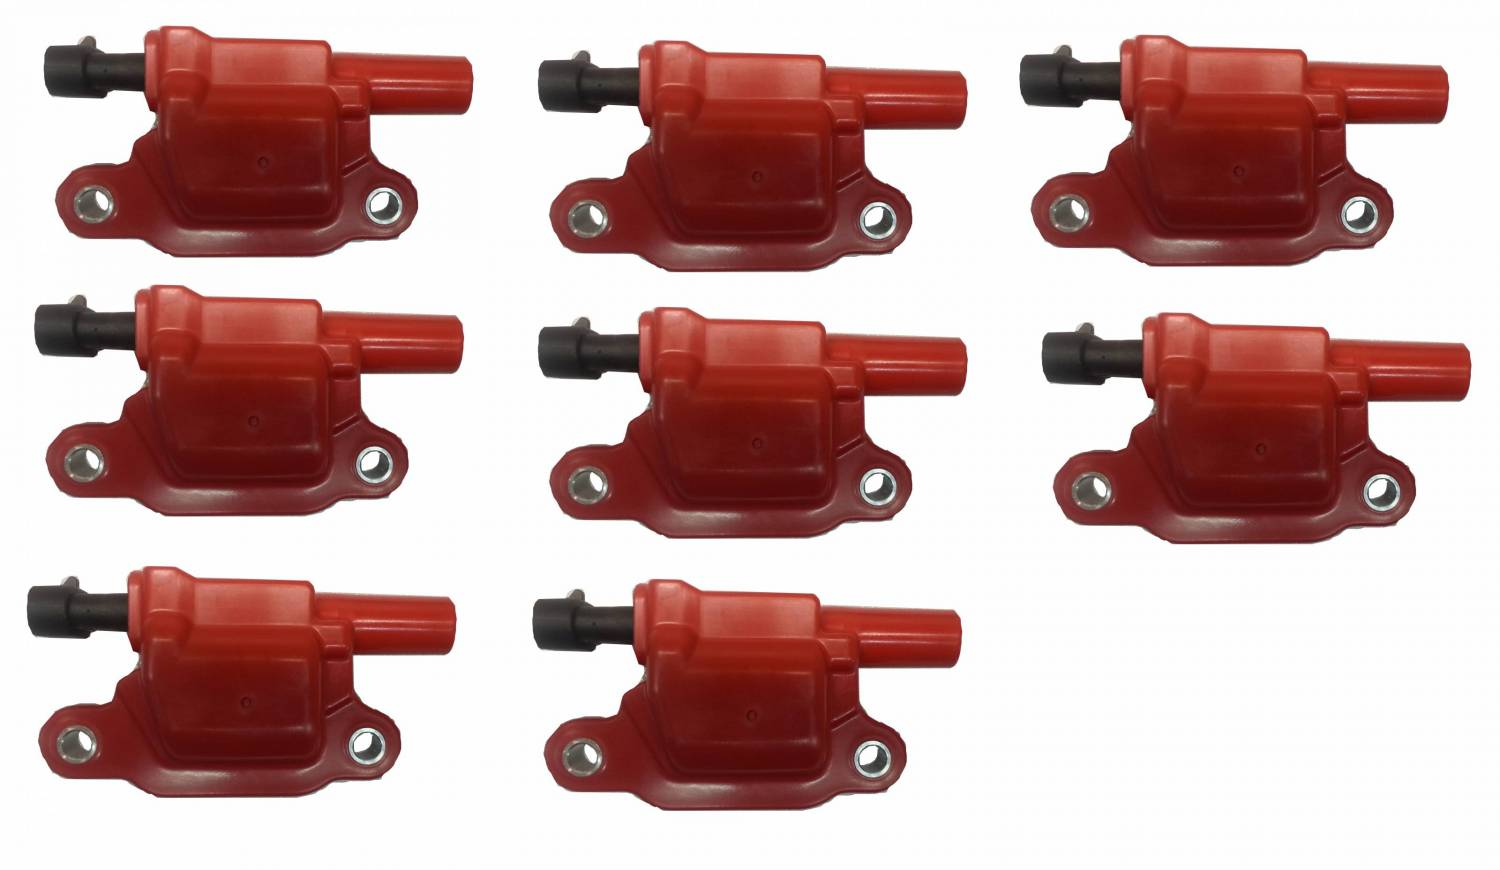 TSP-81015 - Performance Ignition Coil used on most LS3 and LSA